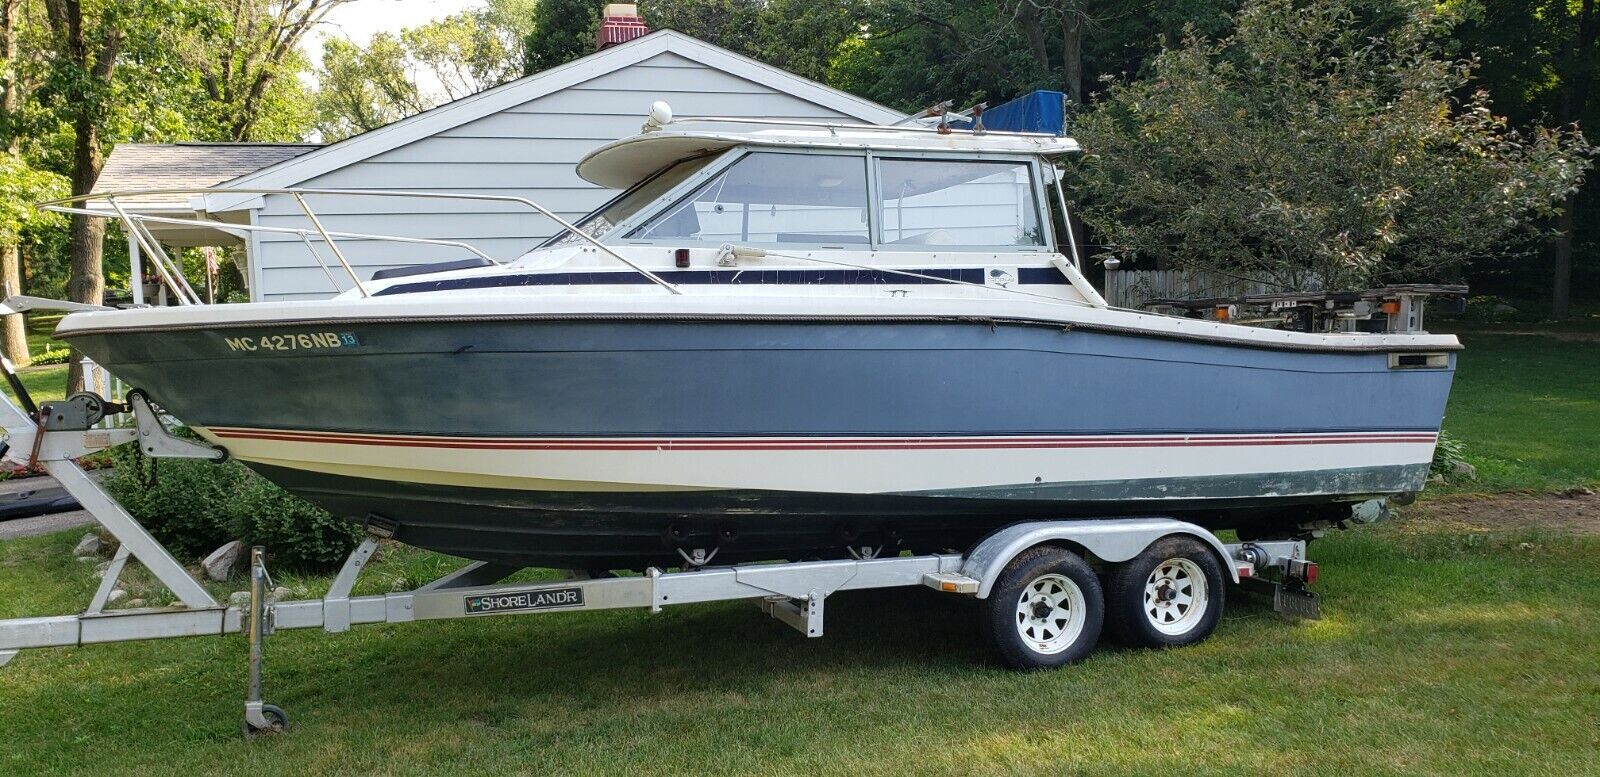 1986 Bayliner 24' Cuddy Cabin & Trailer - Michigan